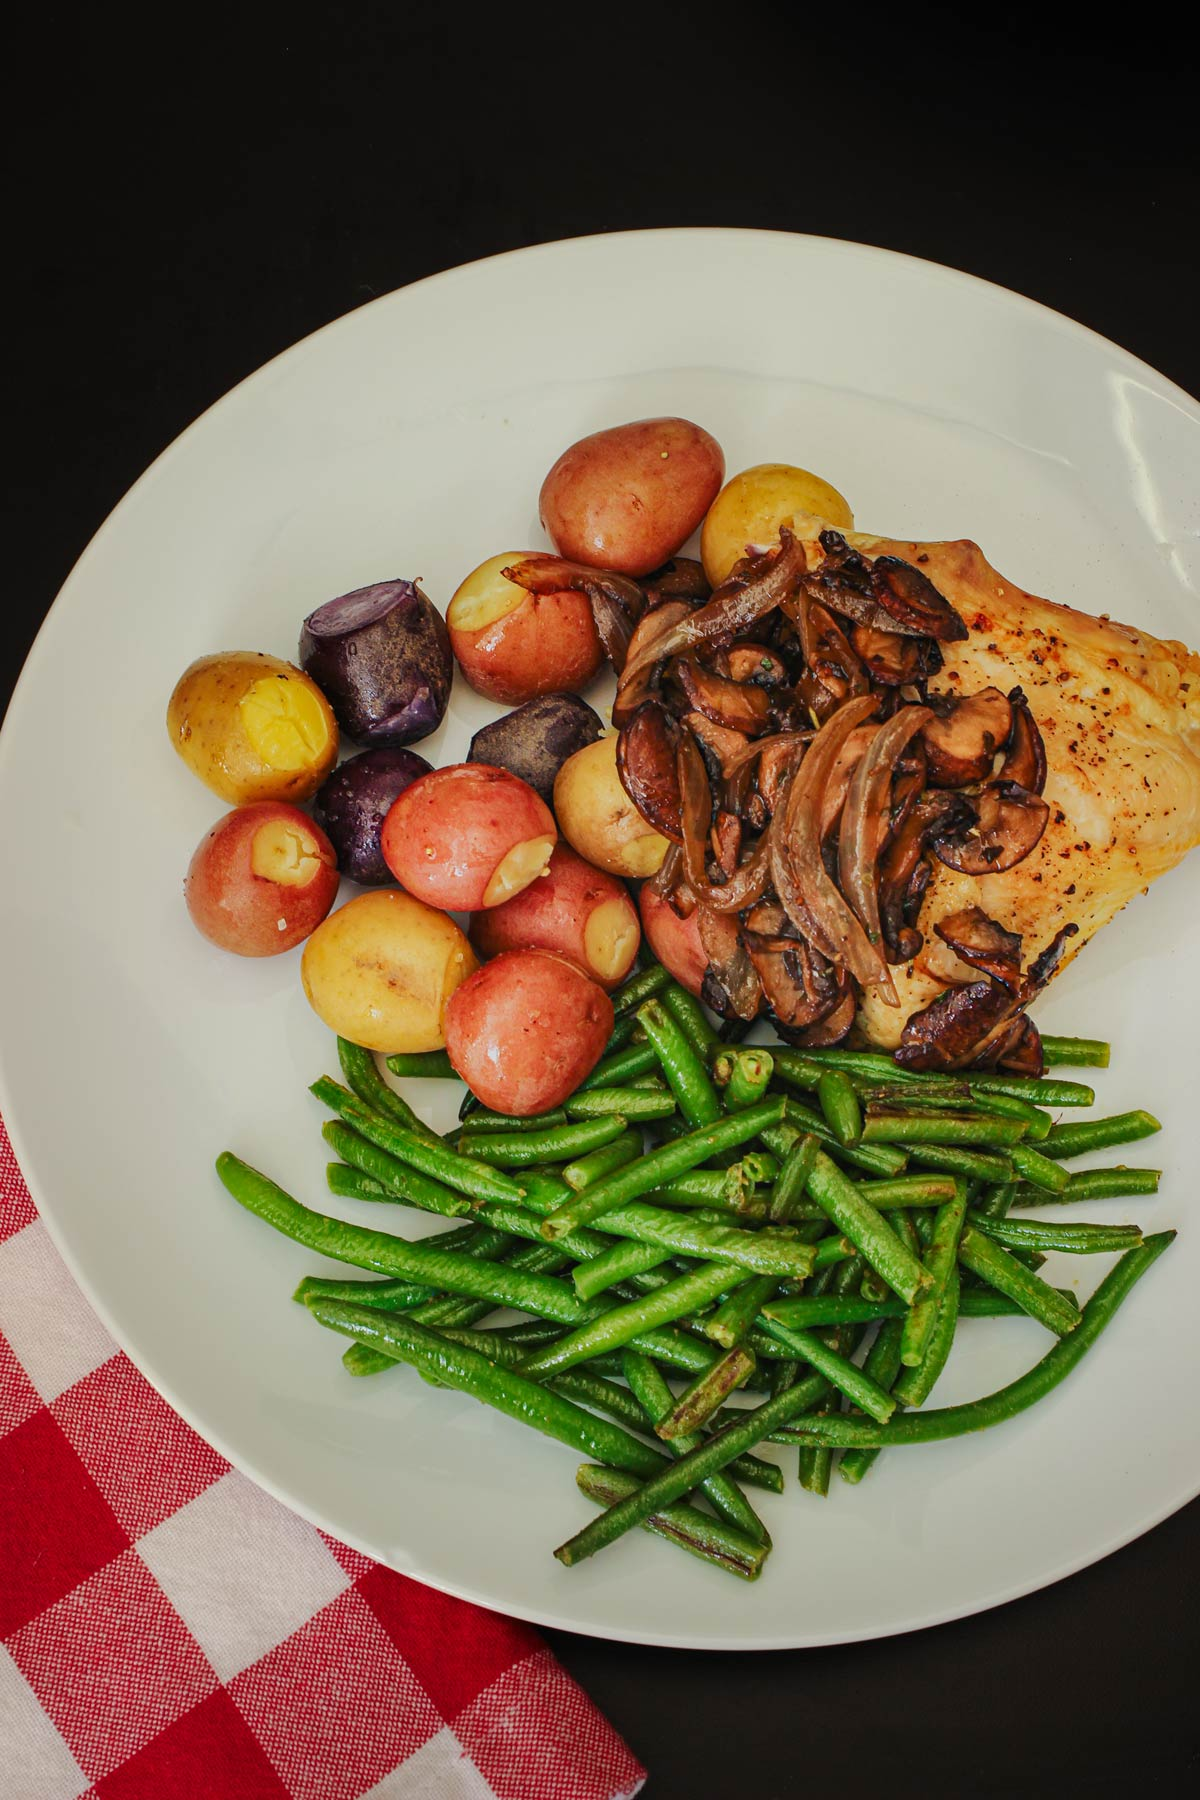 white dinner plate with green beans, potatoes, chicken, and sautéed mushrooms and onions.